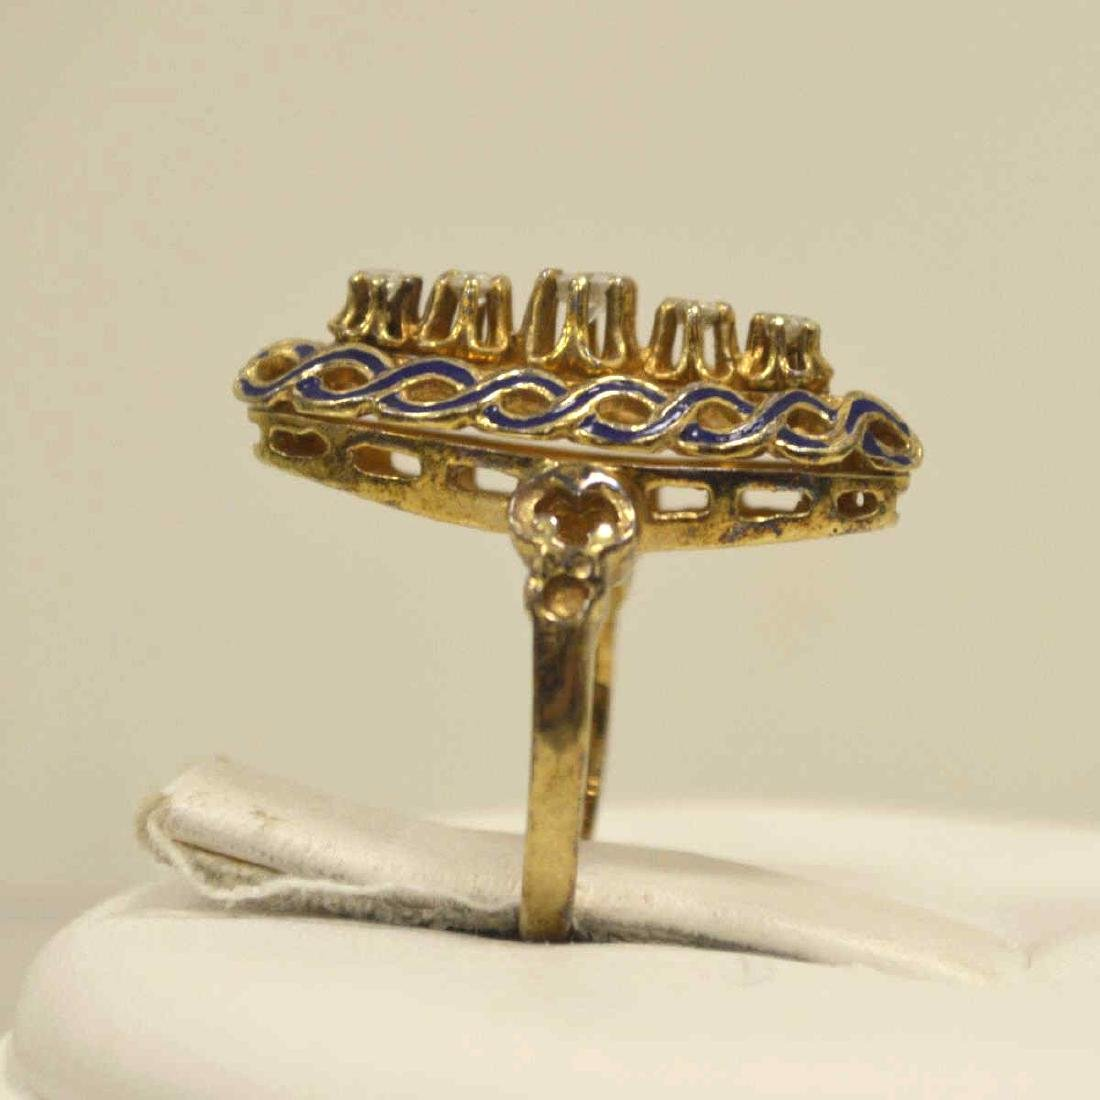 Vintage 14kt yellow gold diamond fashion ring - 5